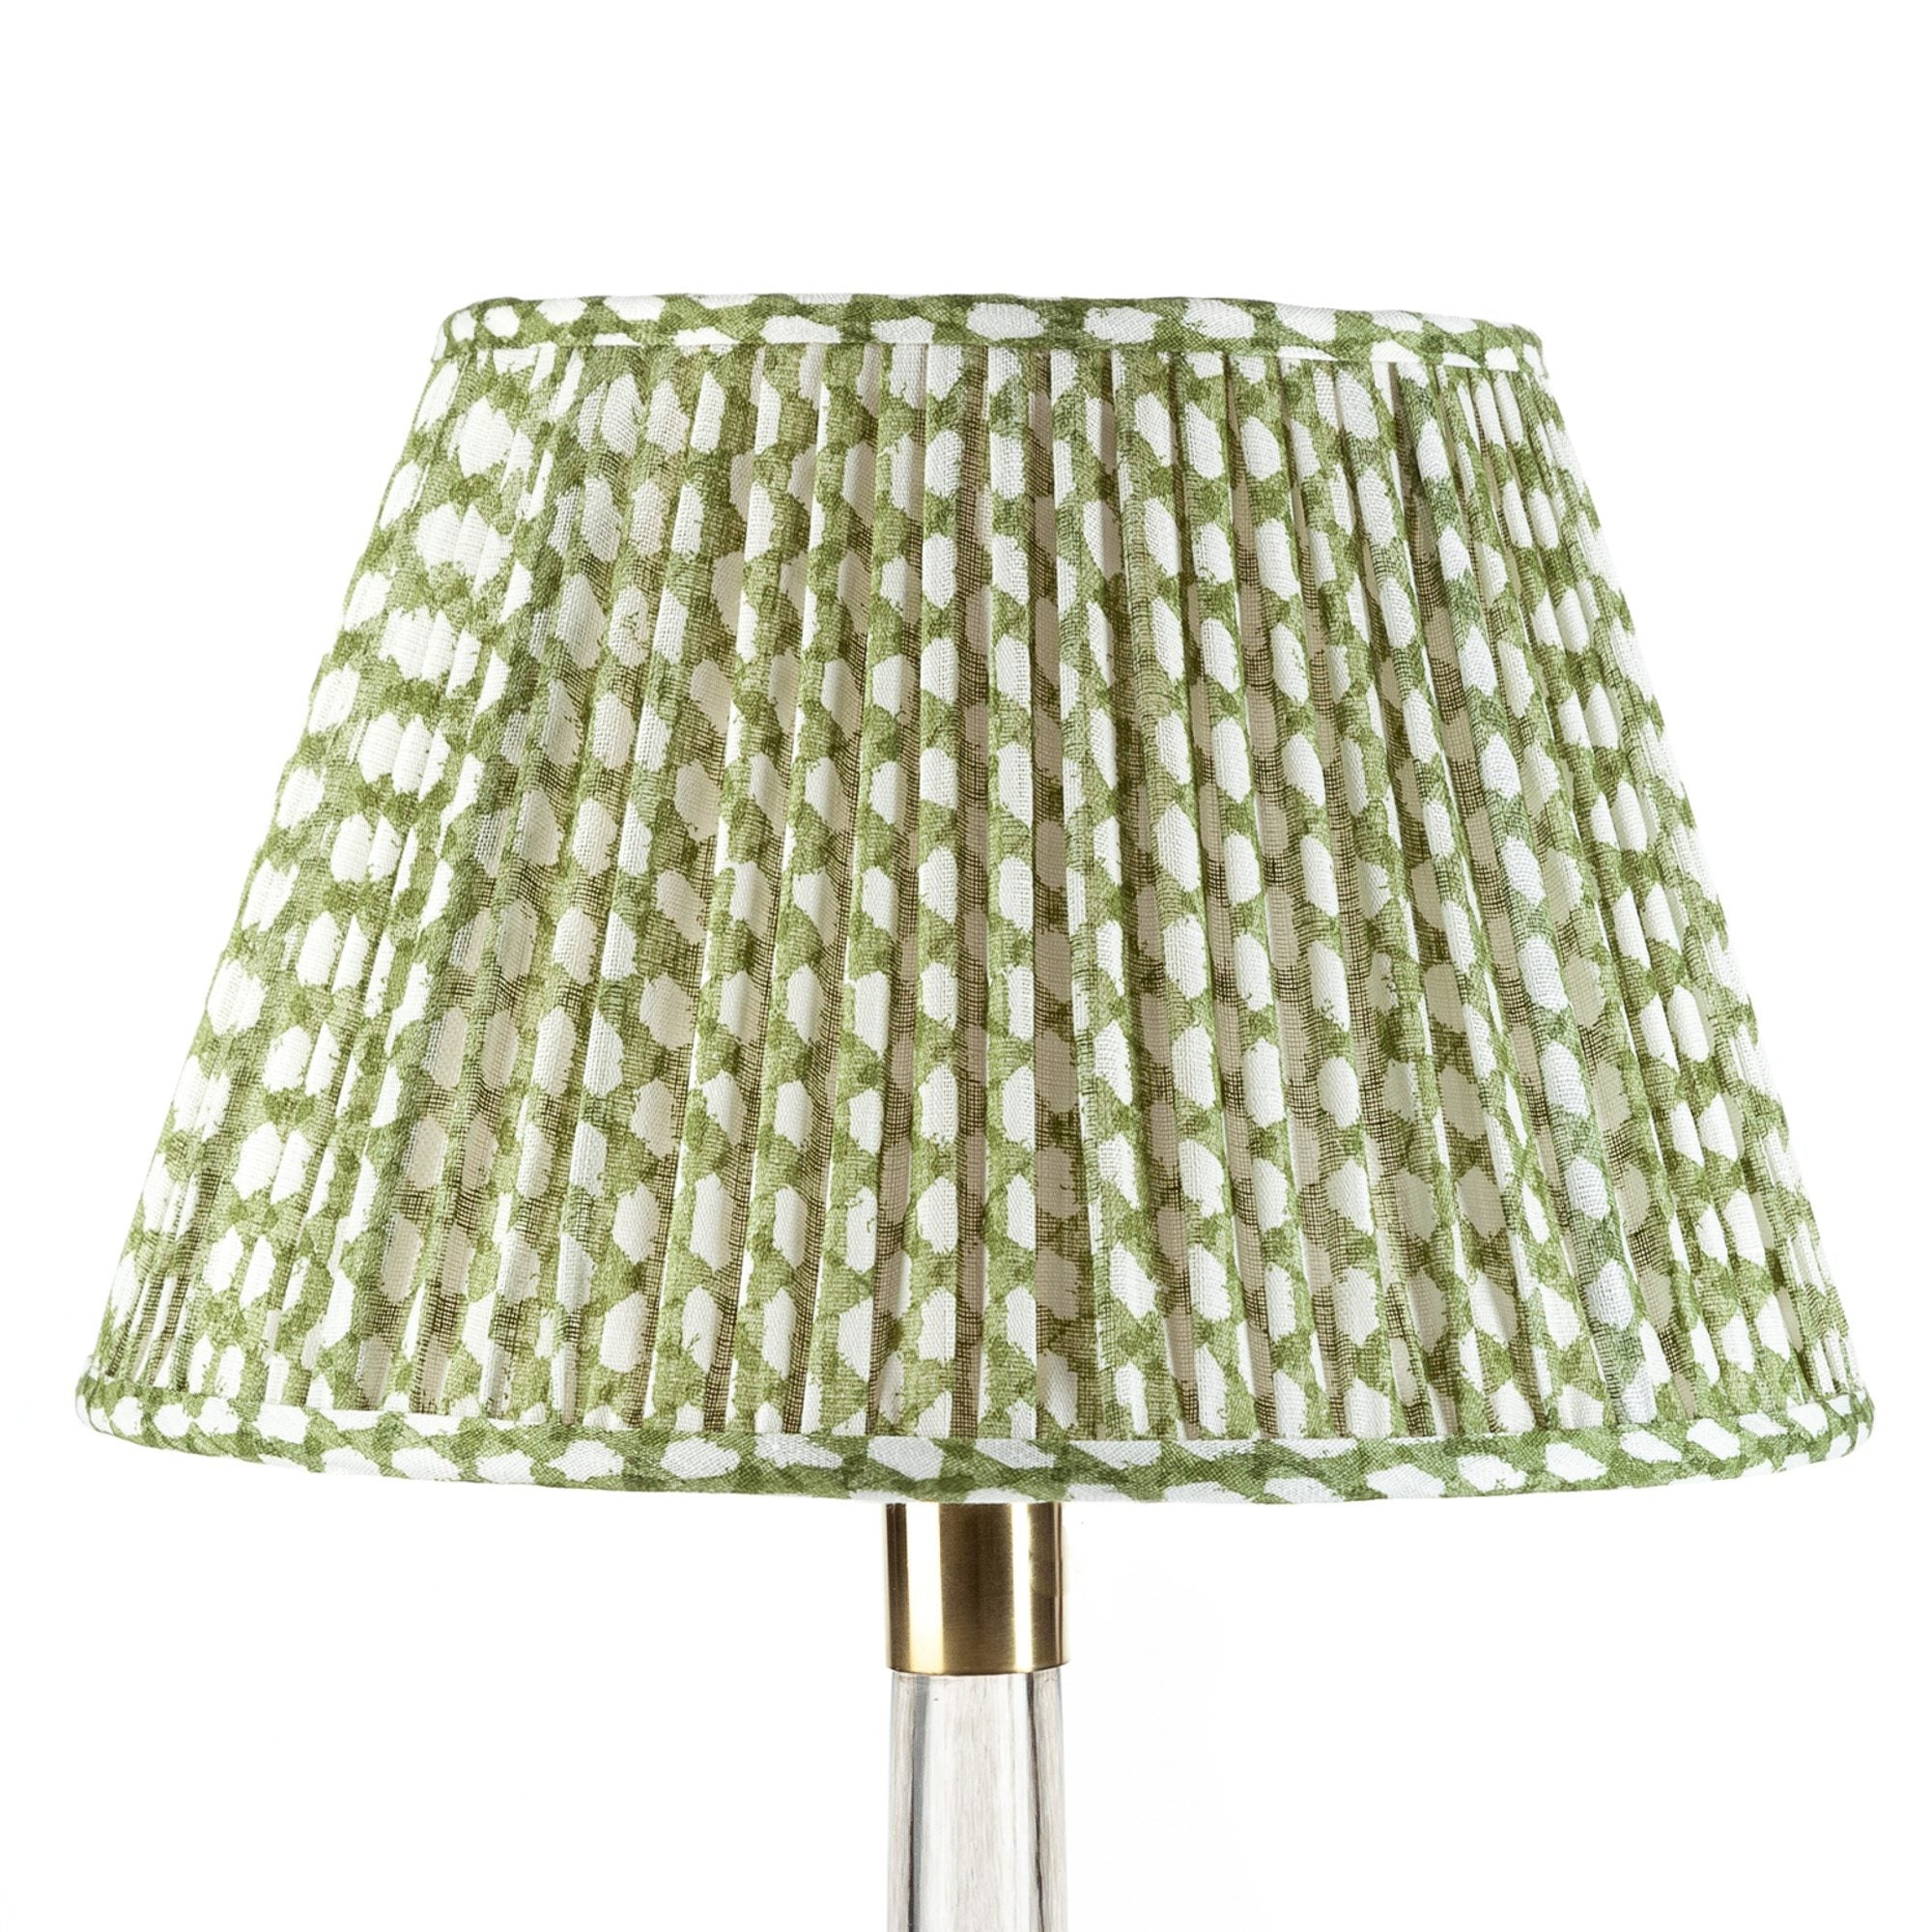 Fermoie Lampshade in Green Wicker